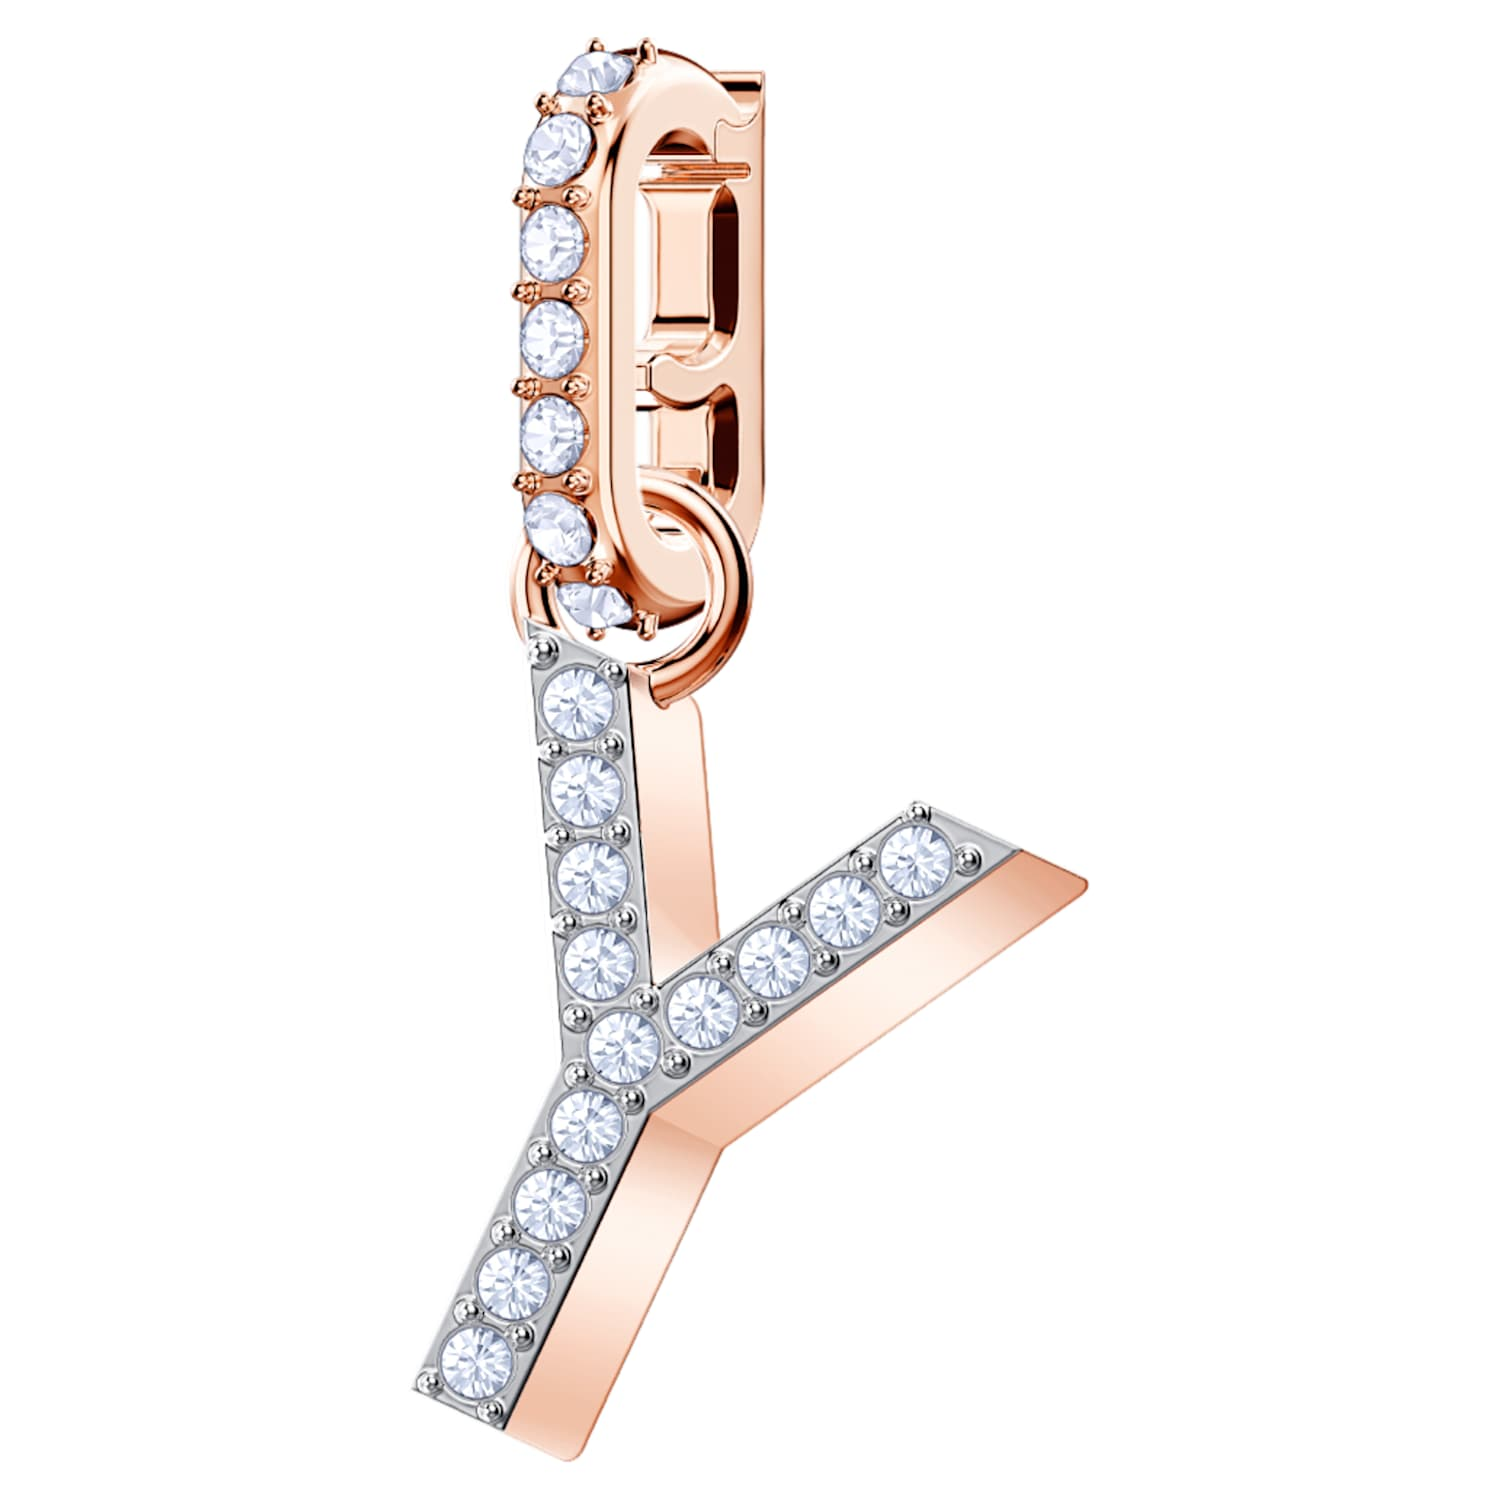 Swarovski Remix Collection Charm Y, White, Rose-gold tone plated